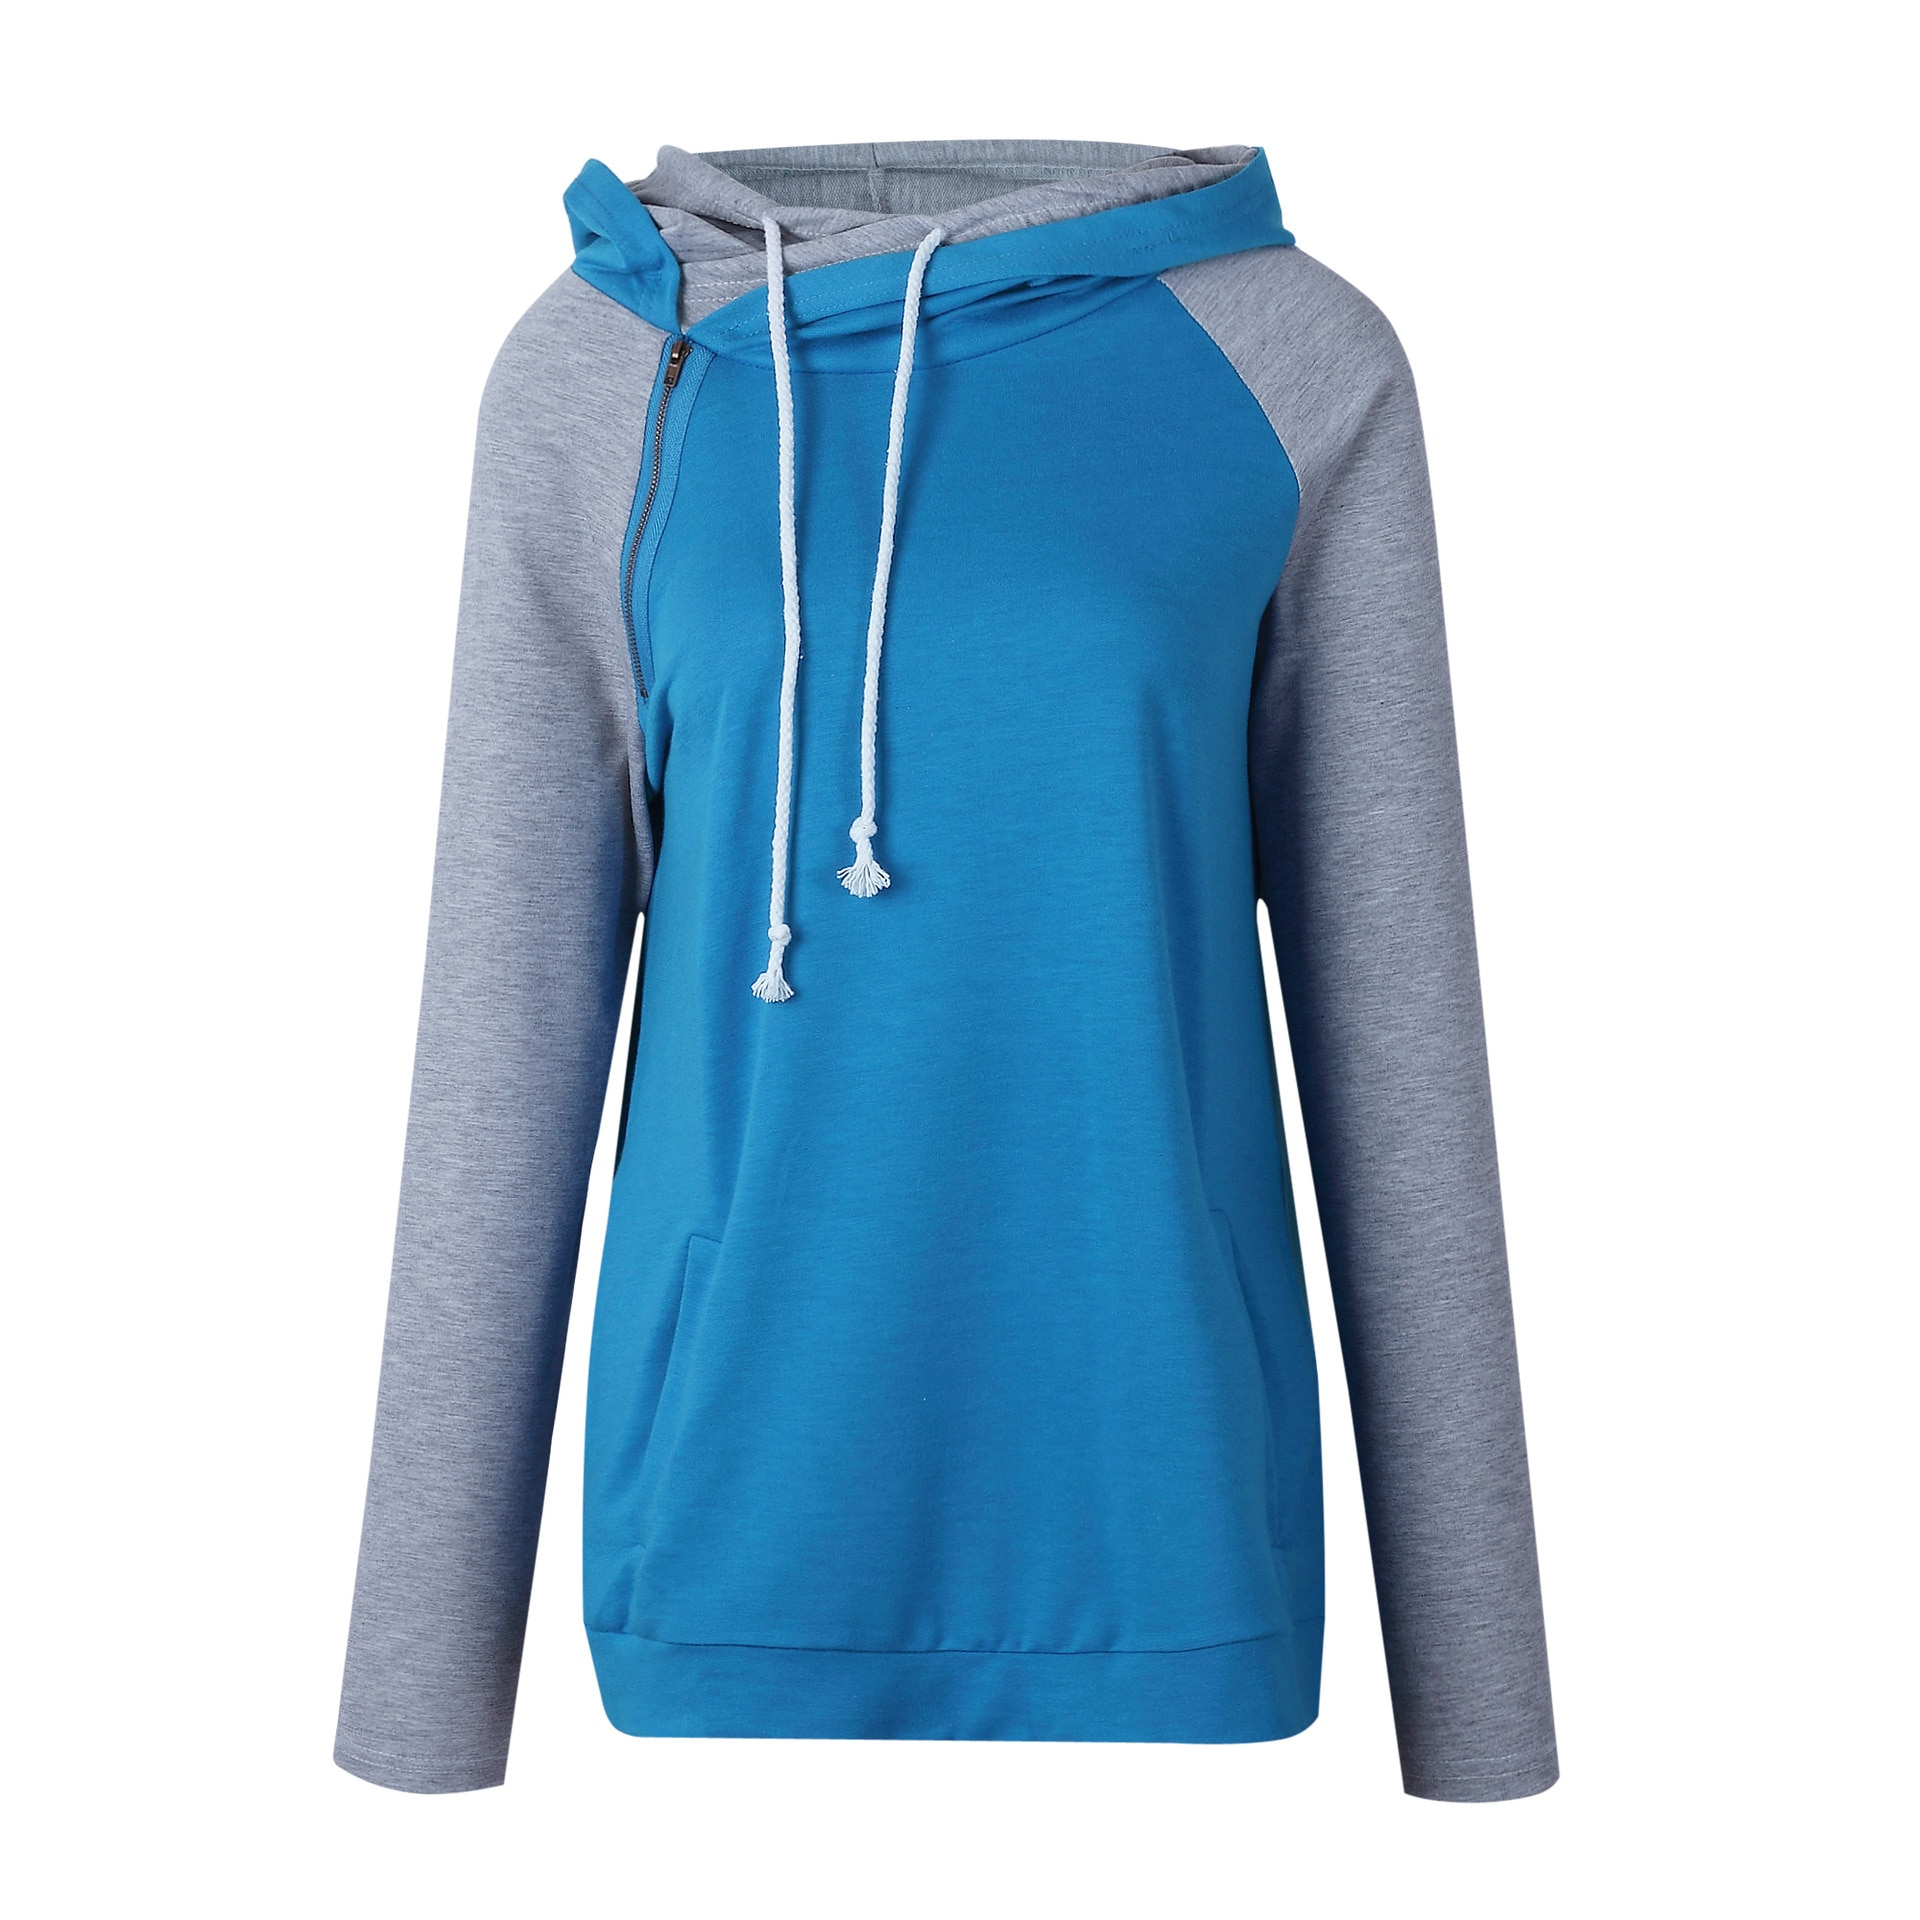 Women's Patchwork Striped Pullover Long Sleeve Hoodie, Tops With Pockets, Hooded Sweatshirt 28